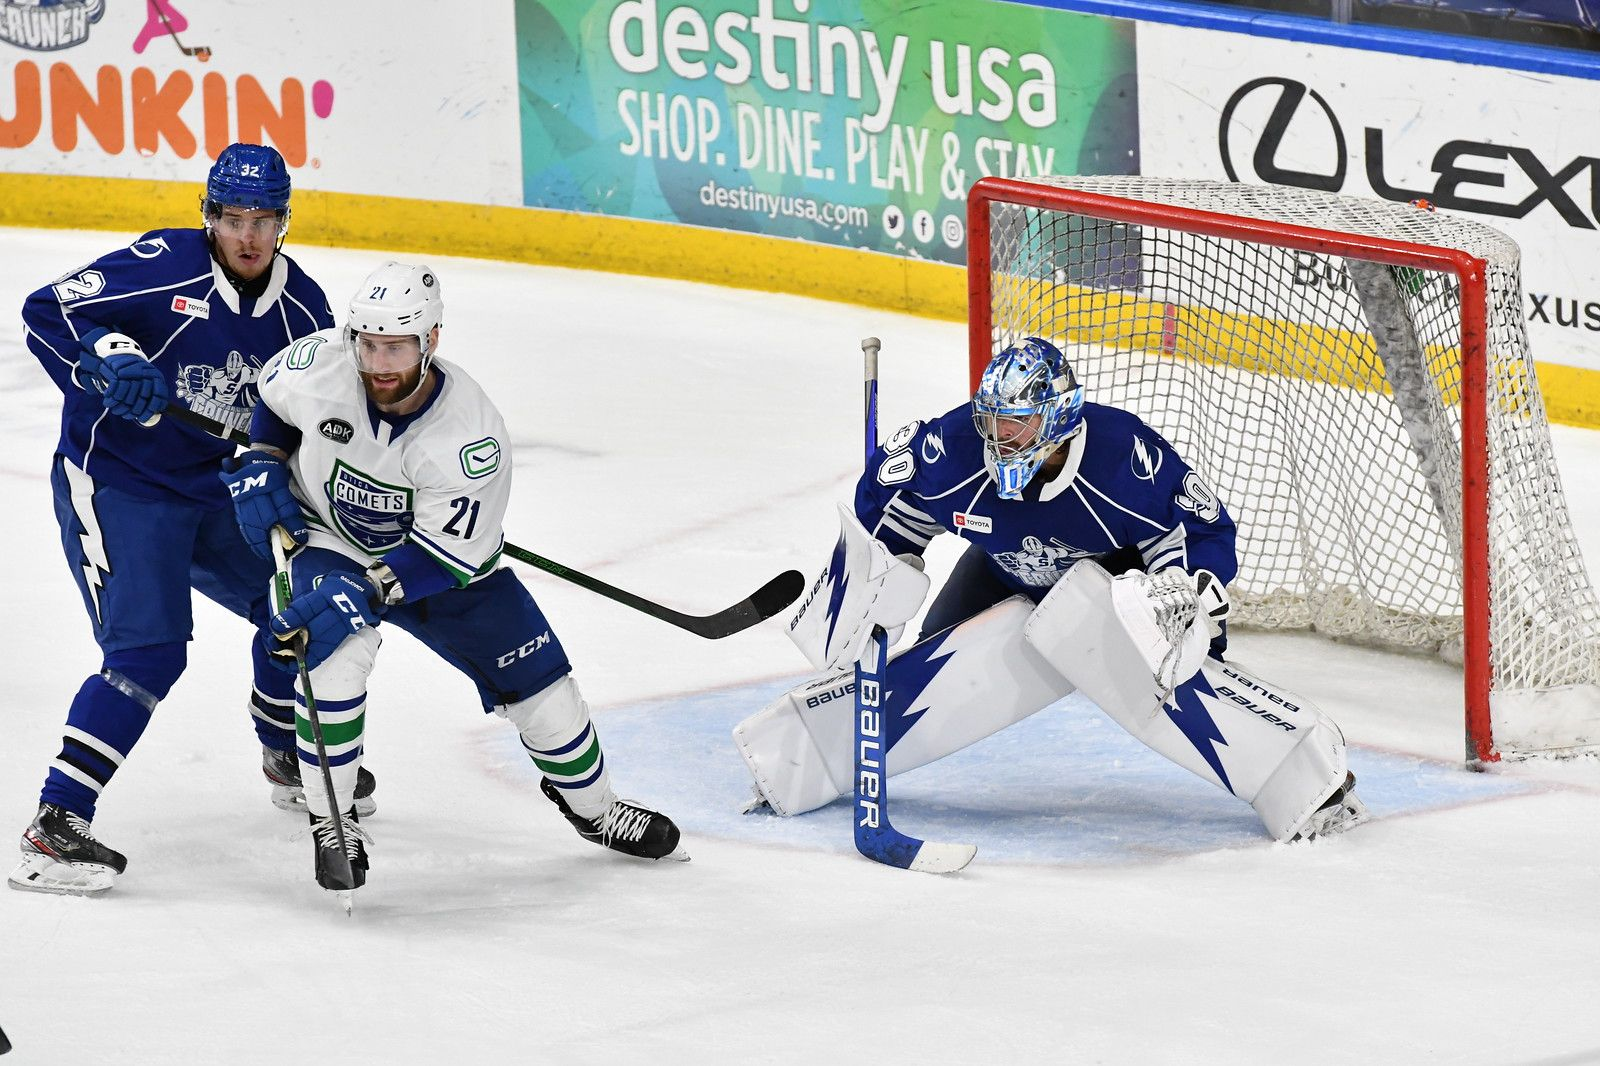 UTICA BESTED BY SYRACUSE ON THE ROAD